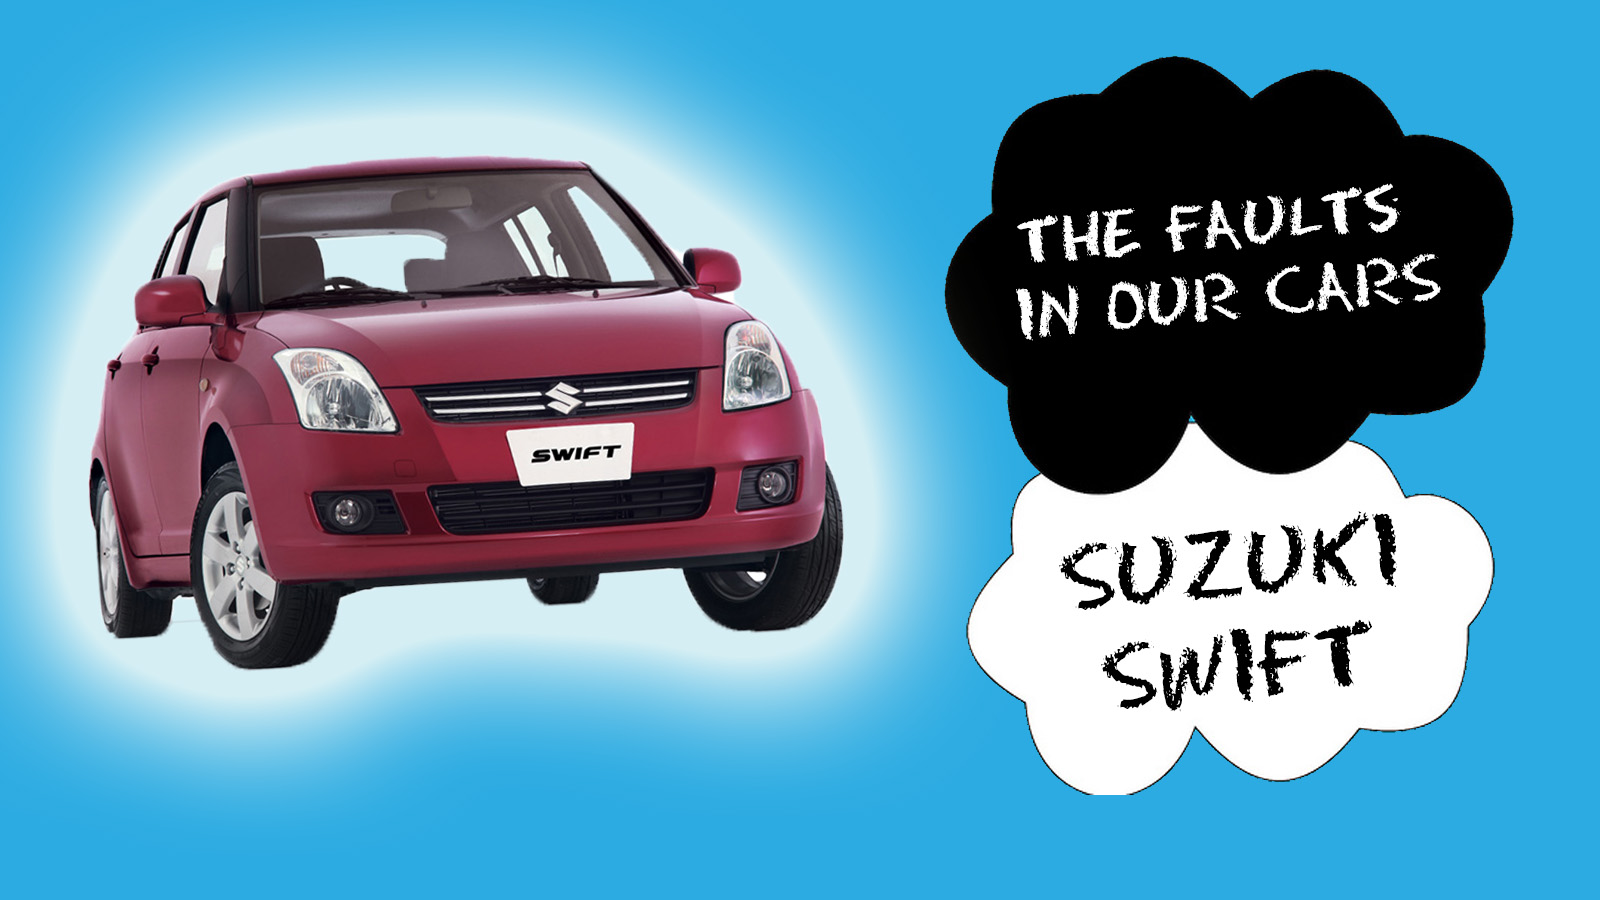 Faults-in-our-cars-suzuki-swift